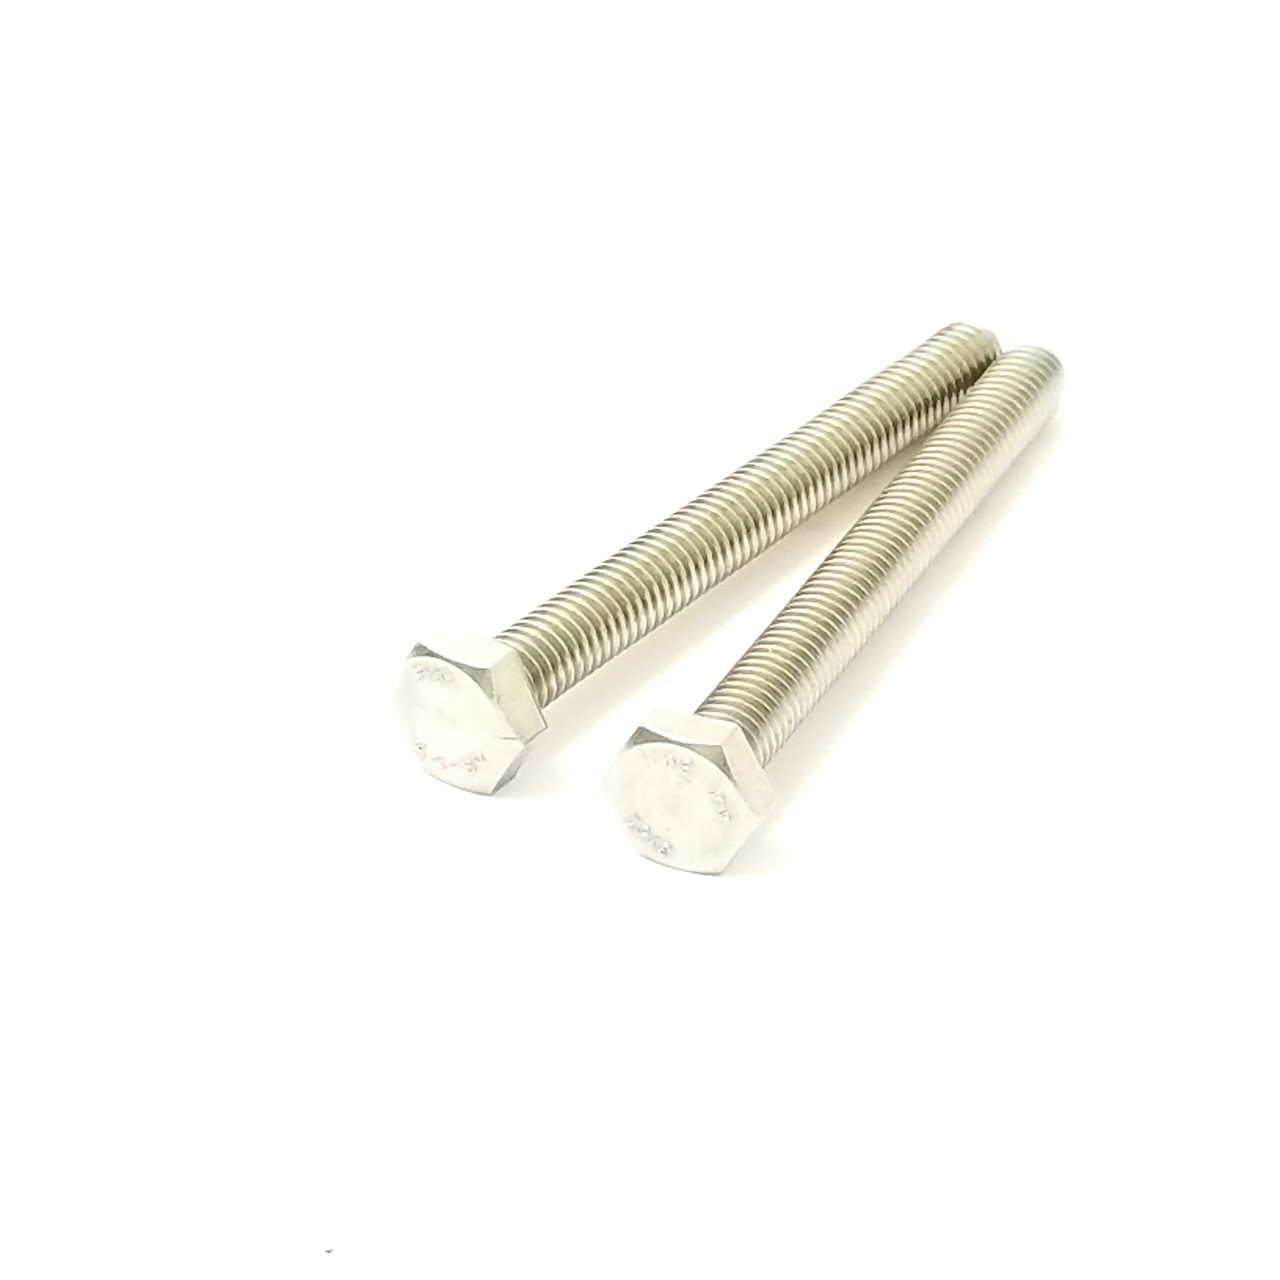 HHB6316 Hex head bolt M6x30 316 Stainless